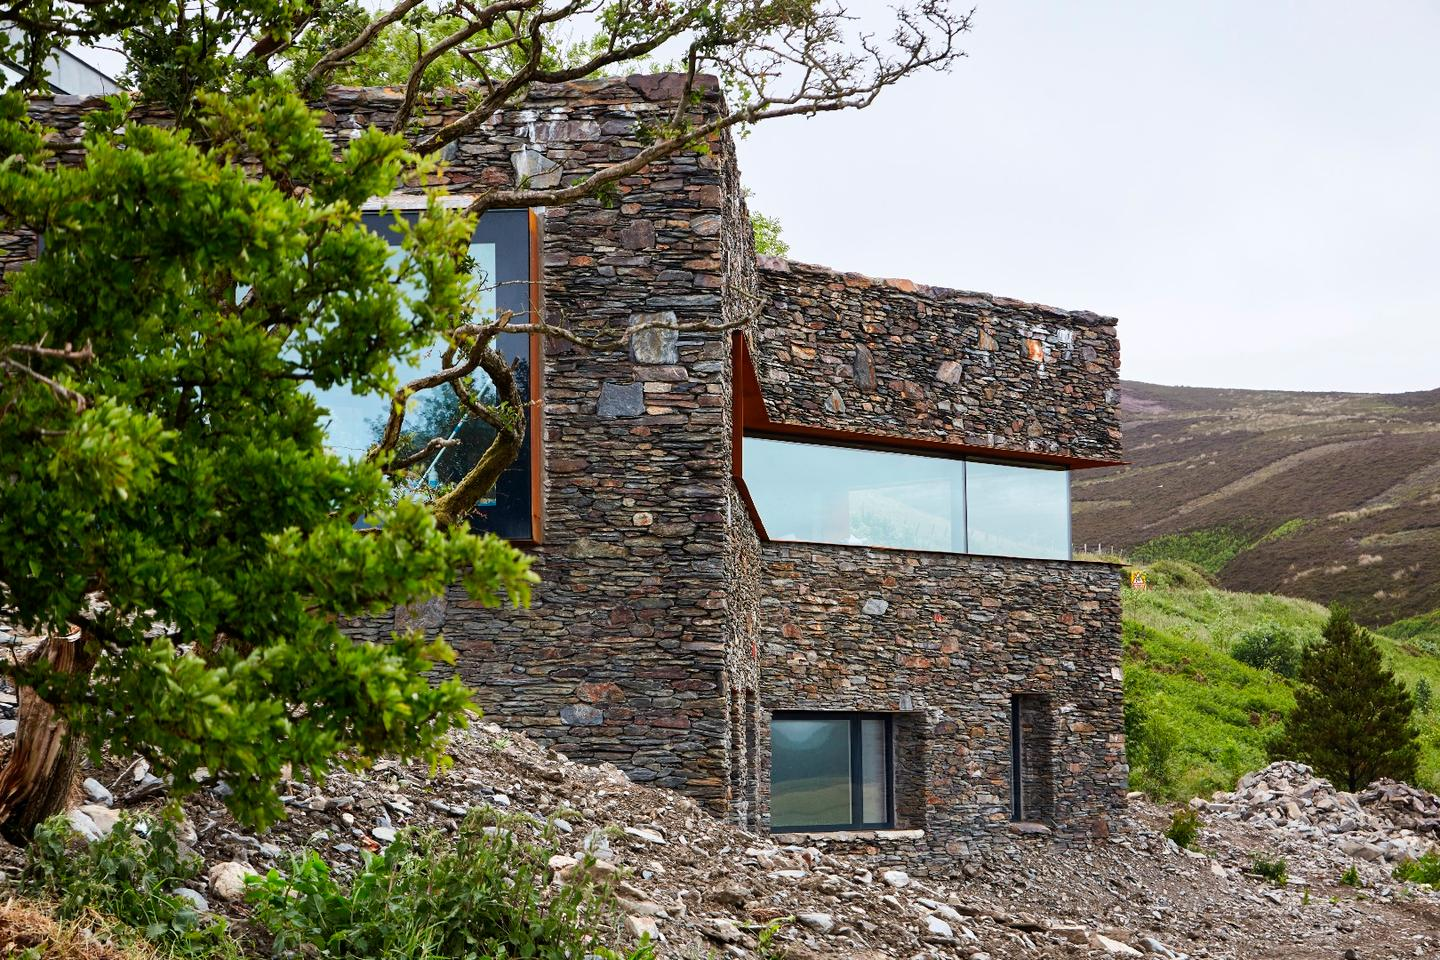 A Restorative Rural Retreat for Sartfell is located in the Isle of Man and was designed by Foster Lomas